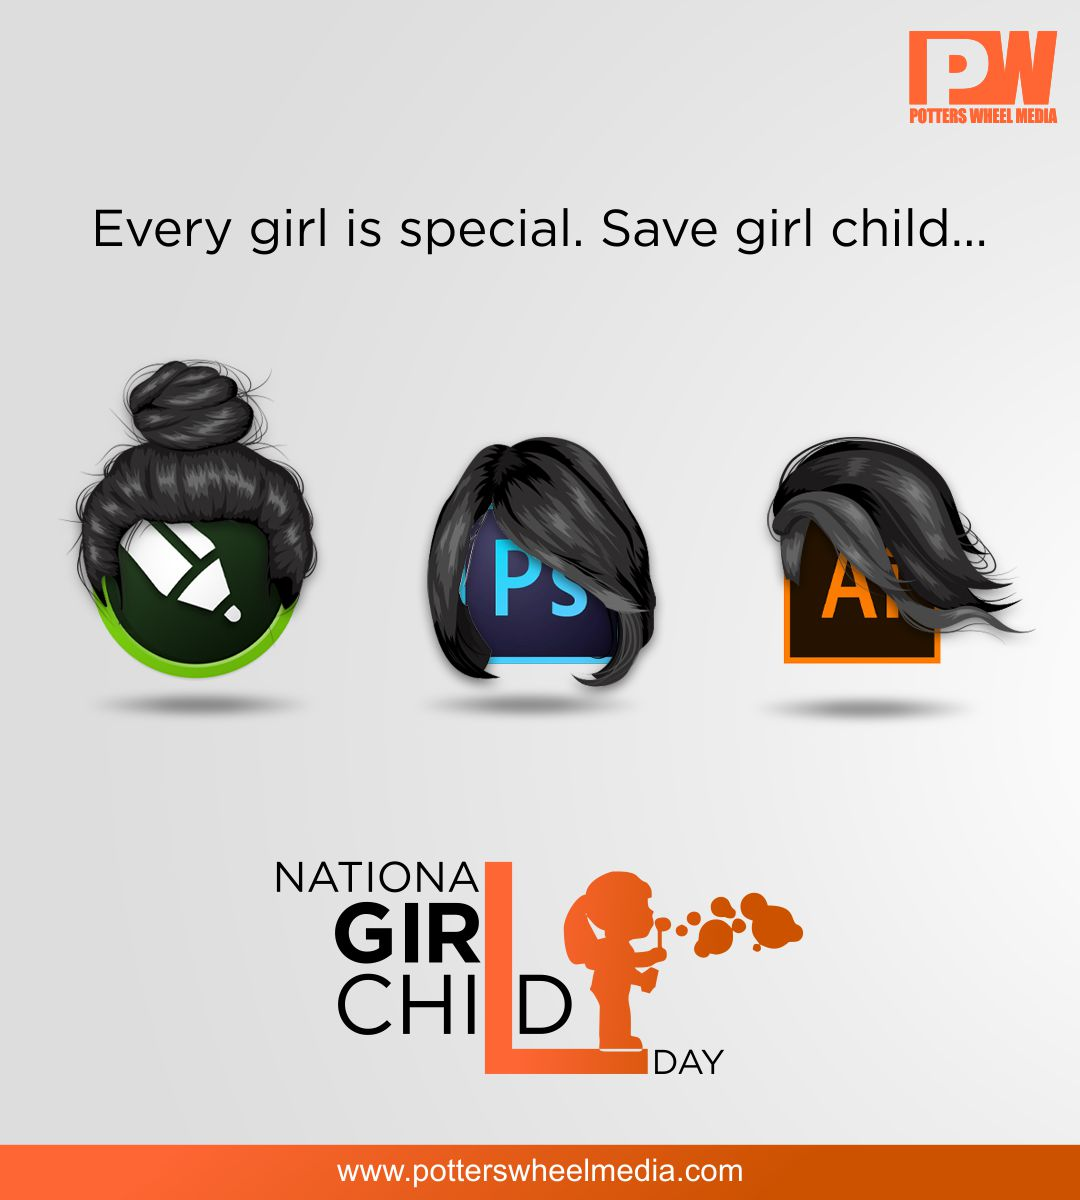 May we know her, teach her and empower her.Happy National Girl Child Day wishes from Potters Wheel...  #girlchild #womenempowerment #education #india #girlchildeducation #girl #women #girlpower #children #support #girls  #girlchildempowerment #inspiration #girleducation